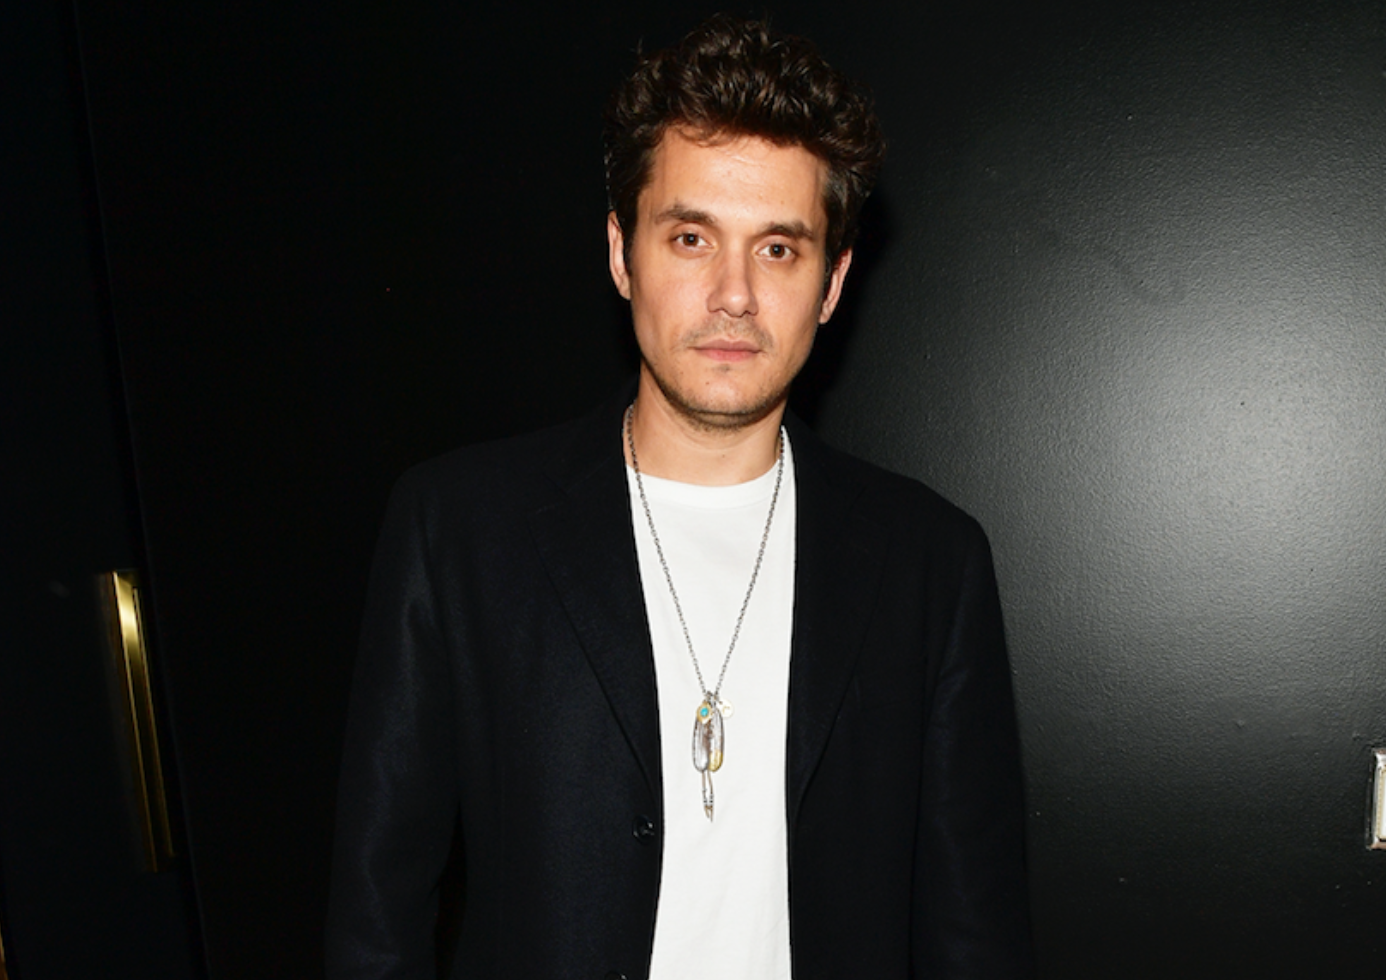 John Mayer Shares His Thoughts on Feminism